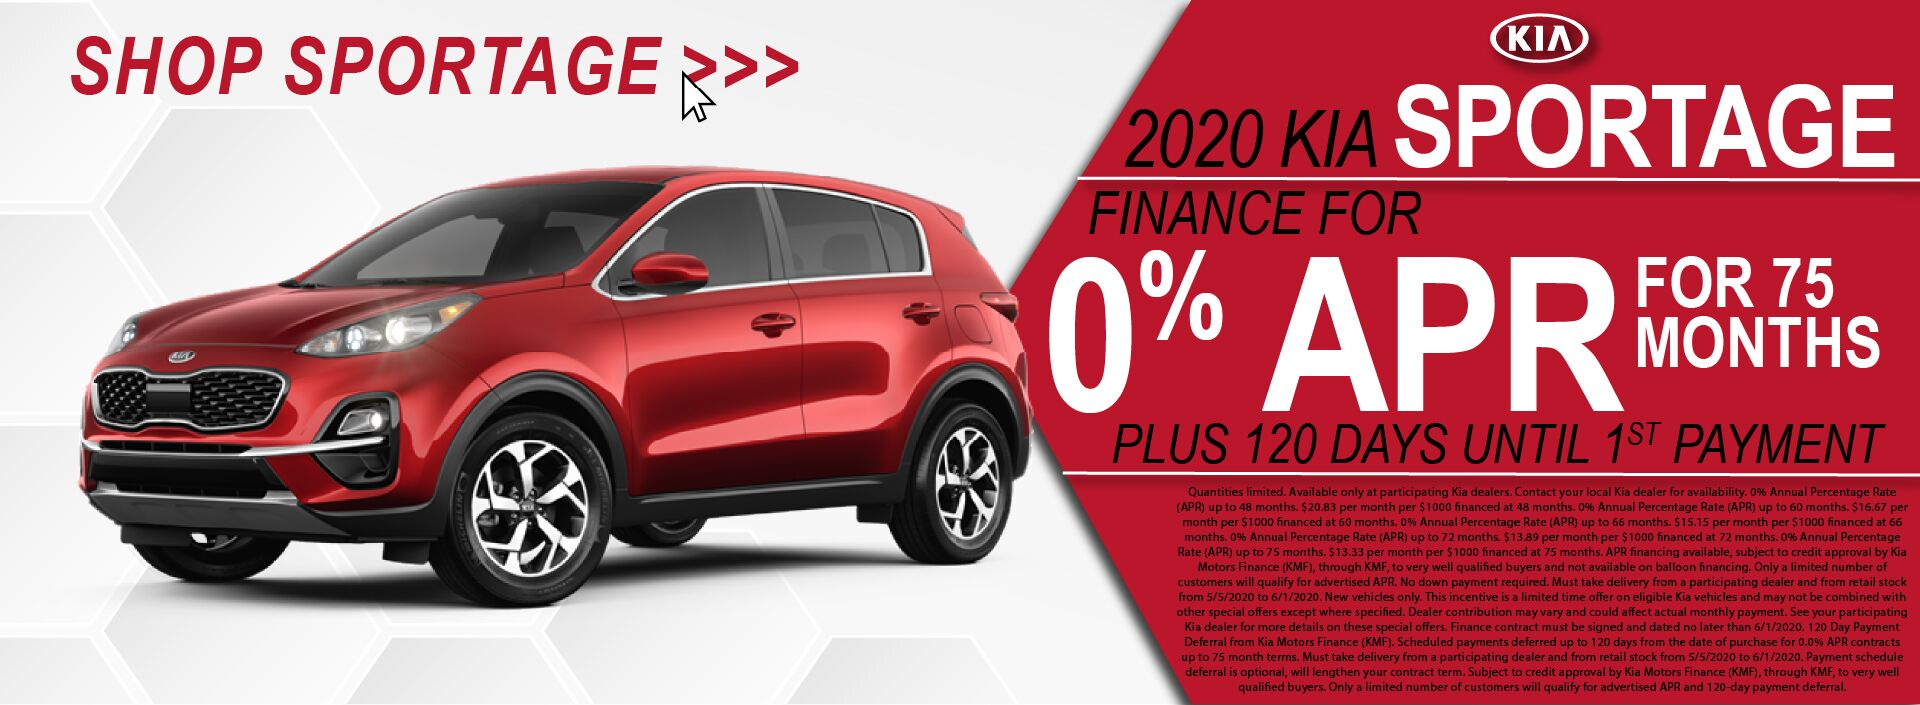 Bill Bryan Kia Sportage 0% APR